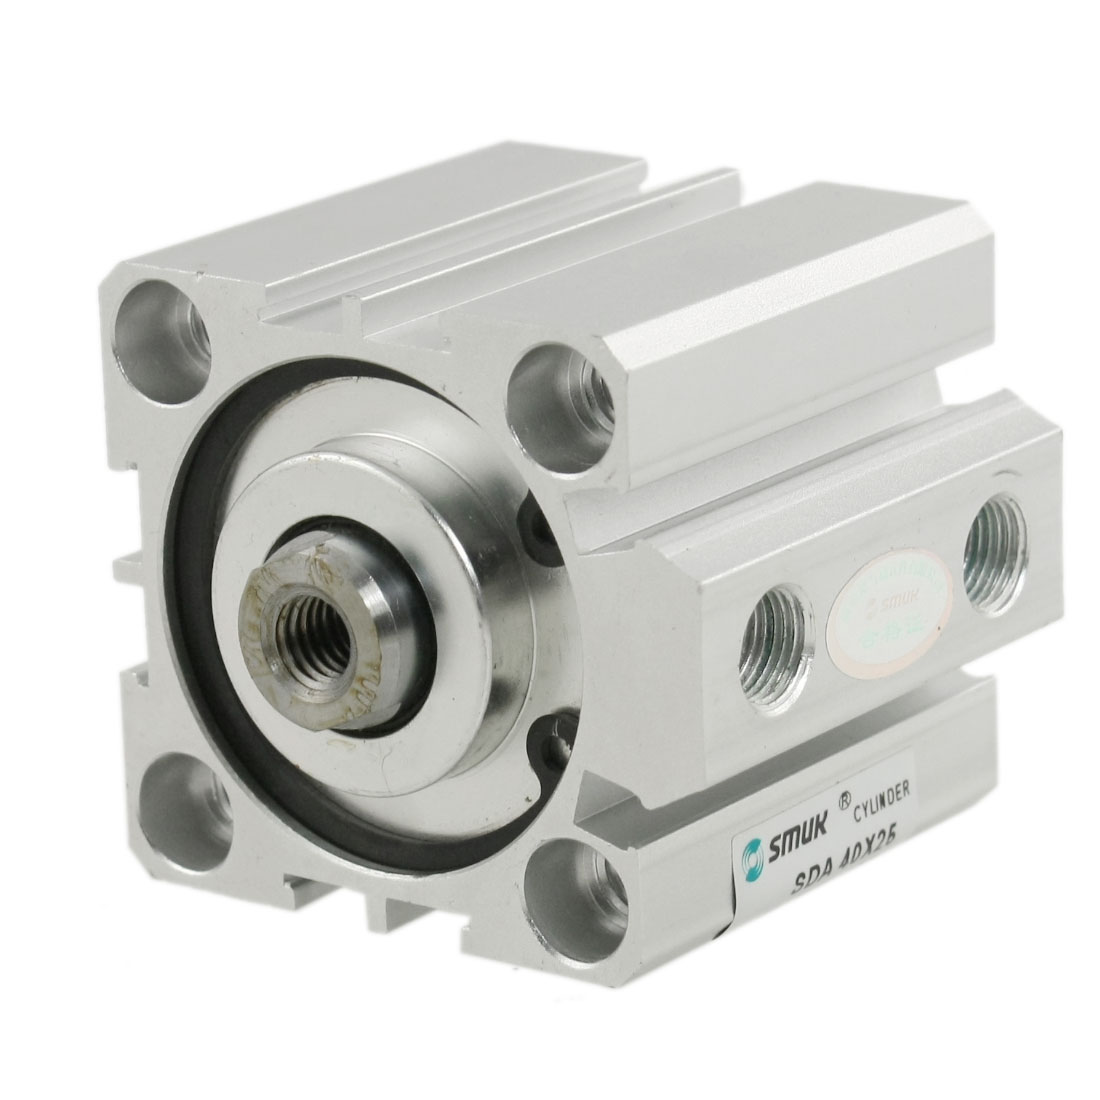 SDA Series 40x25mm 1.0Mpa Press Pneumatic Compact Thin Air Cylinder